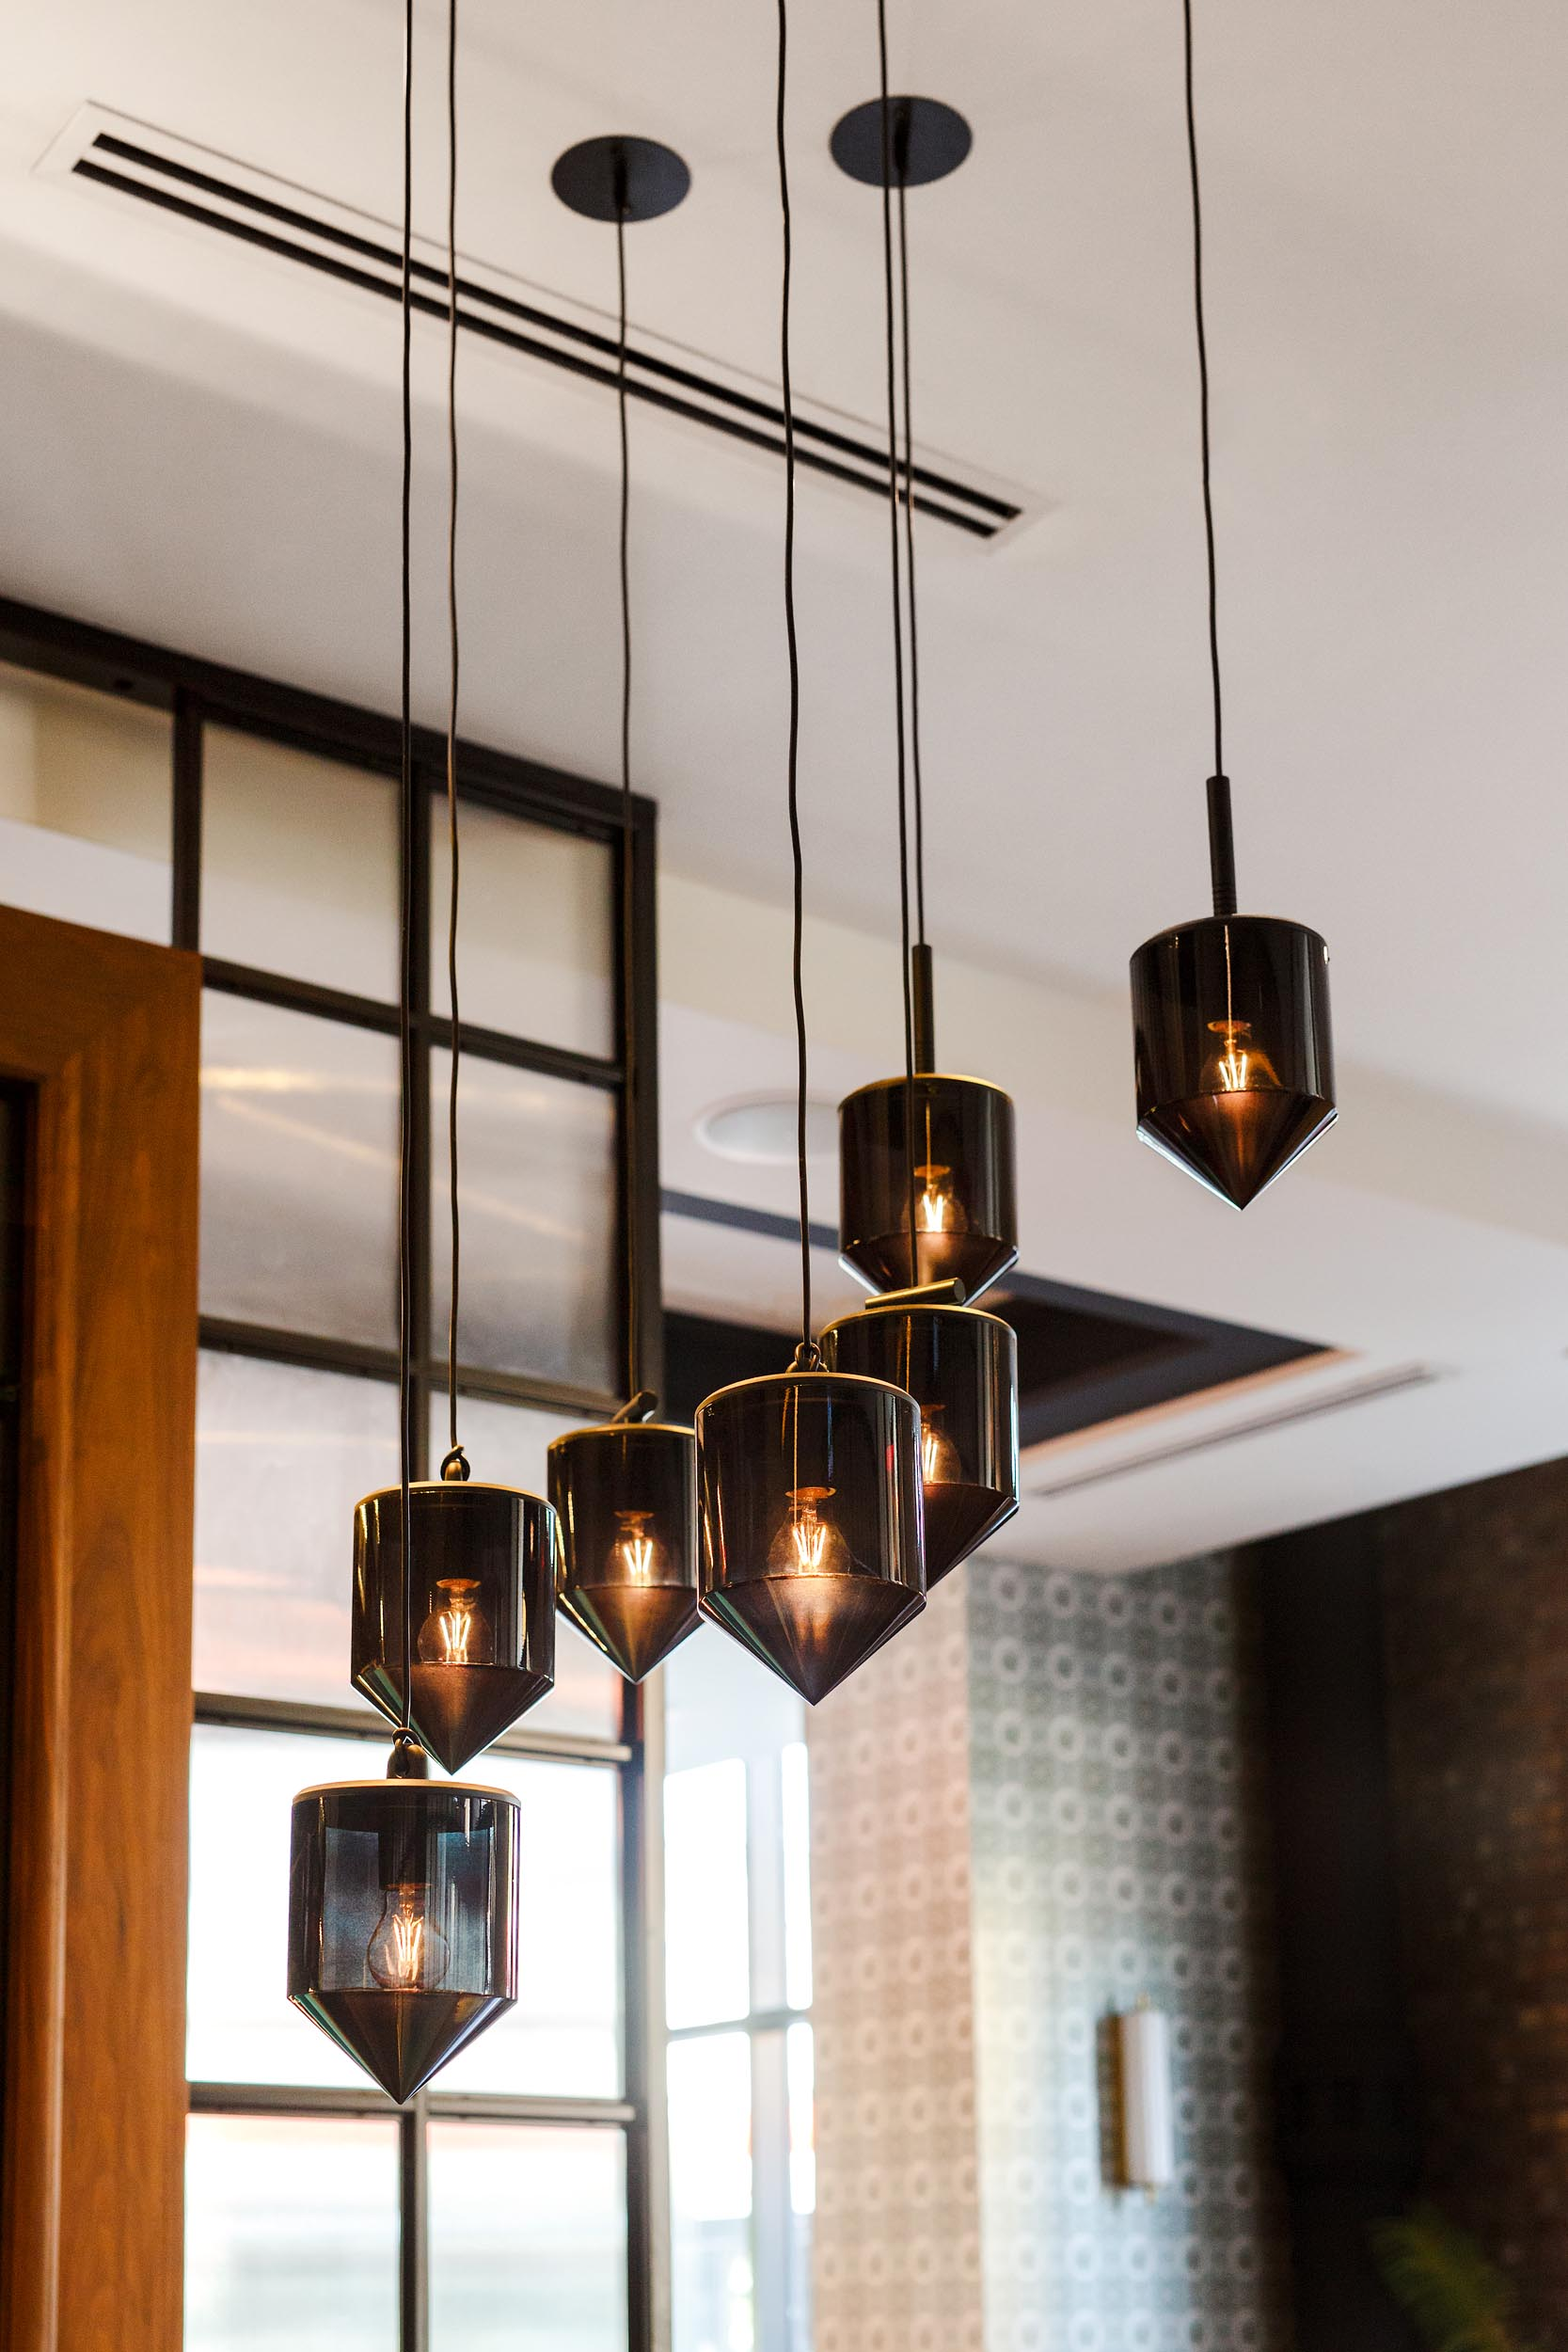 Broadview Hotel Interior Design Styles Photography of Lights